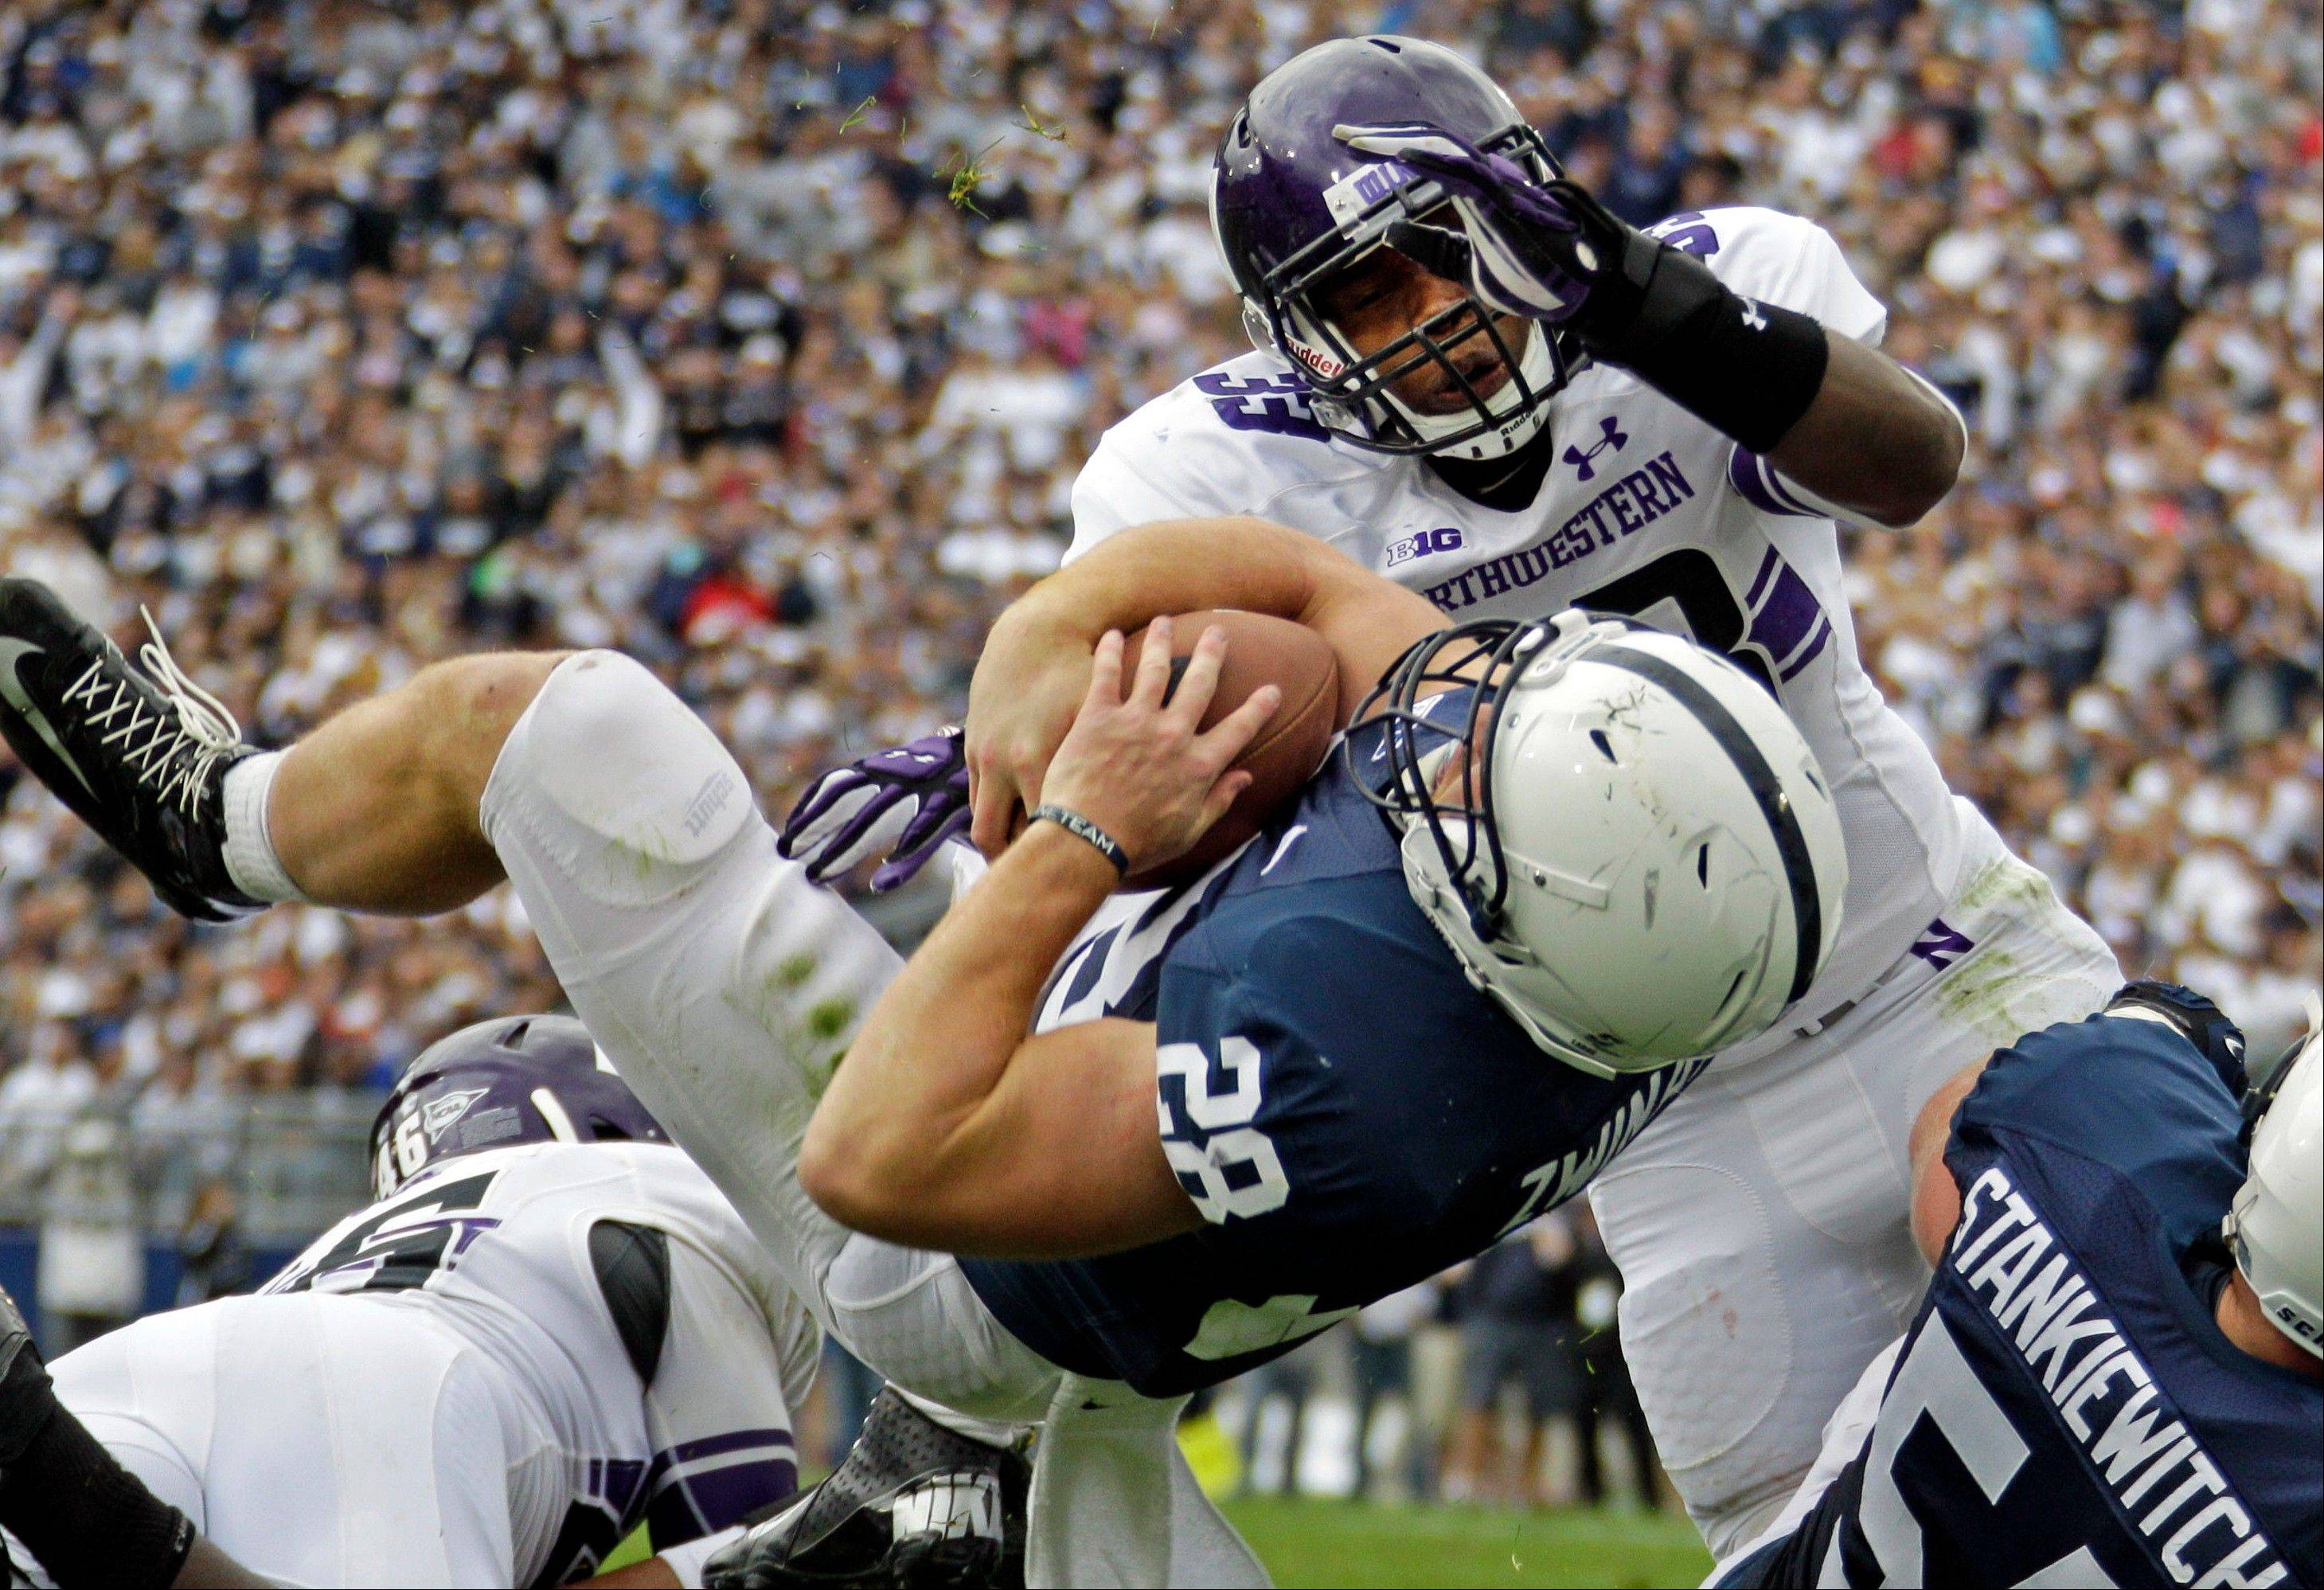 Penn State running back Zach Zwinak dives into the end zone past Northwestern linebacker David Nwabuisi (33) for a touchdown during the second quarter.